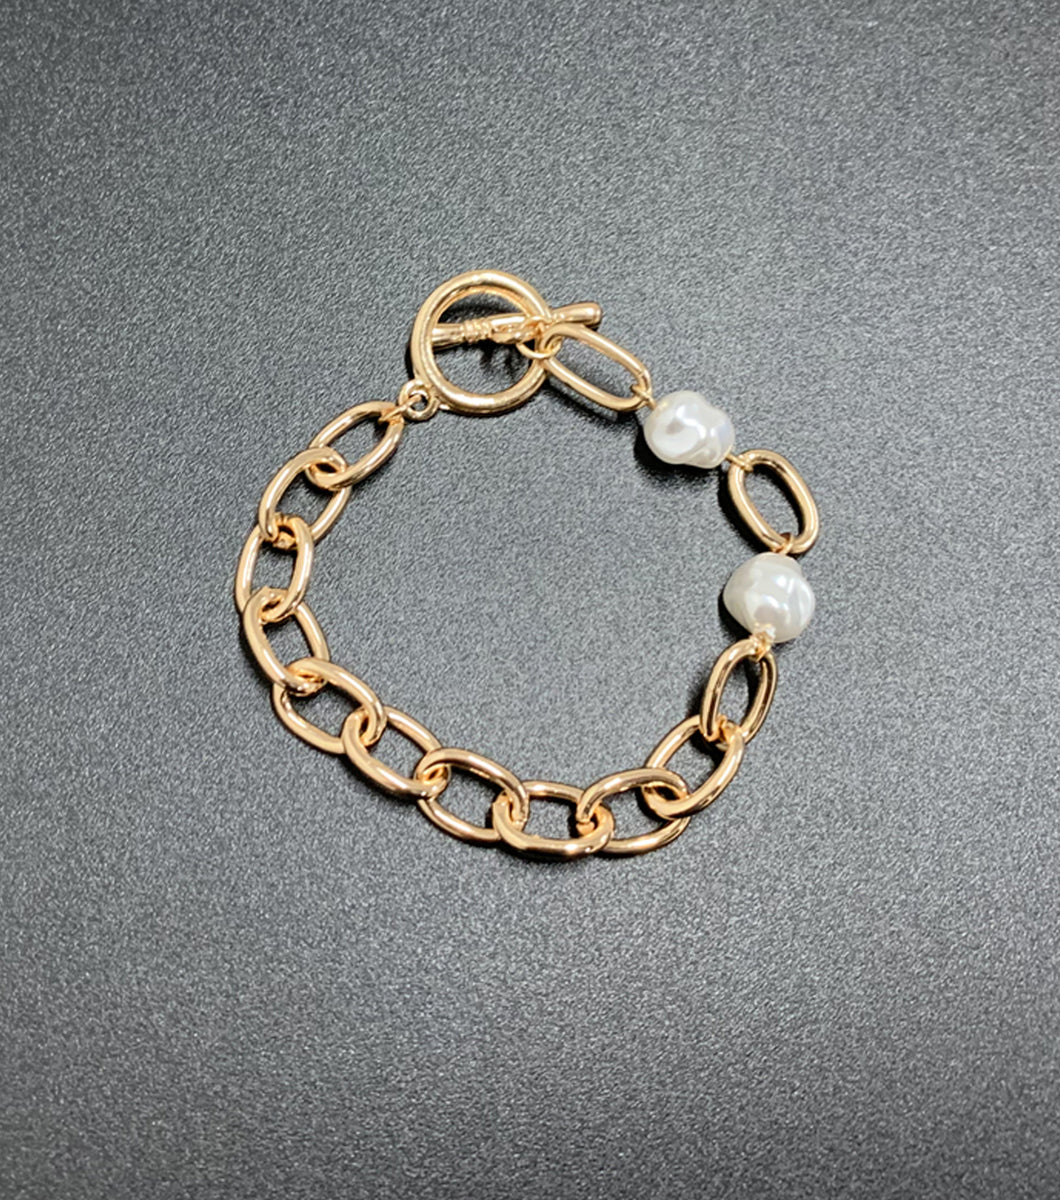 Luciana Stainless Steel Chain Bracelet